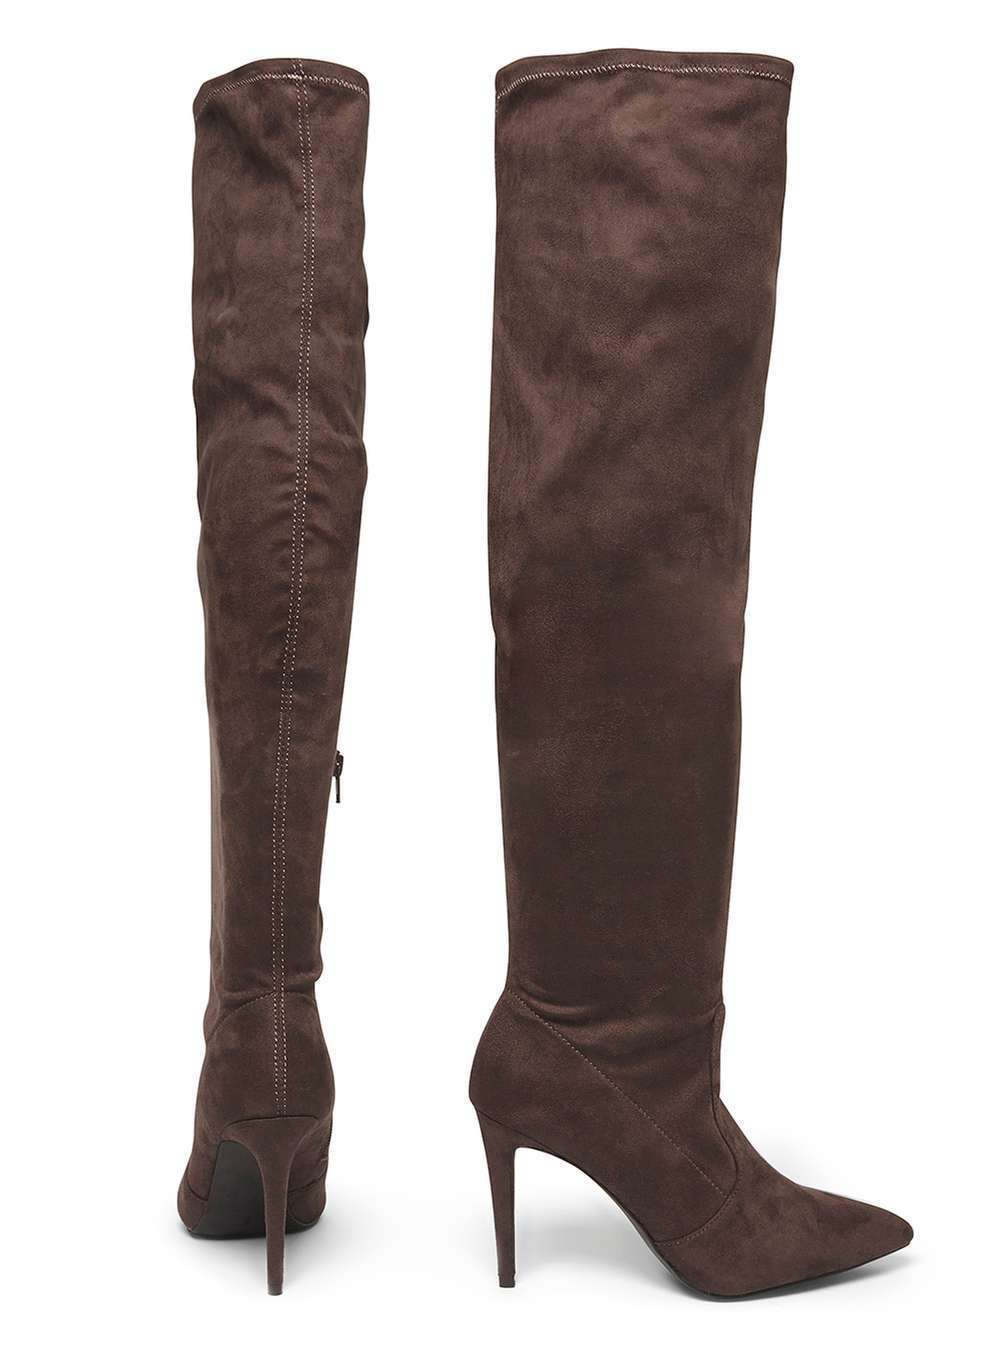 DGoldTHY PERKINS Größe 5 7 grau KIMBERLY FAUX SUEDE OVER KNEE THIGH Stiefel